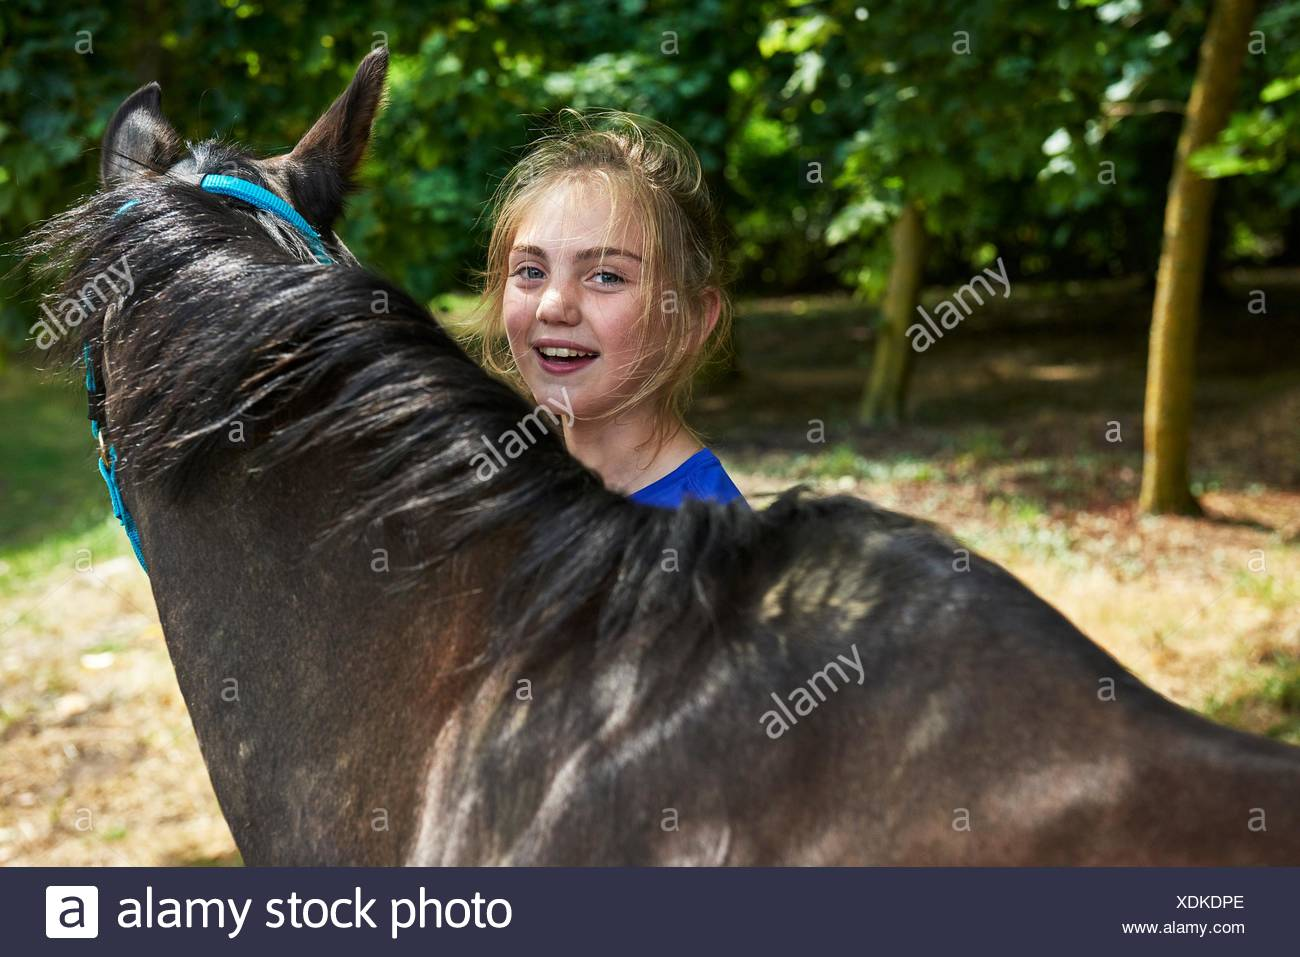 Head and shoulders of girl with horse looking at camera smiling - Stock Image